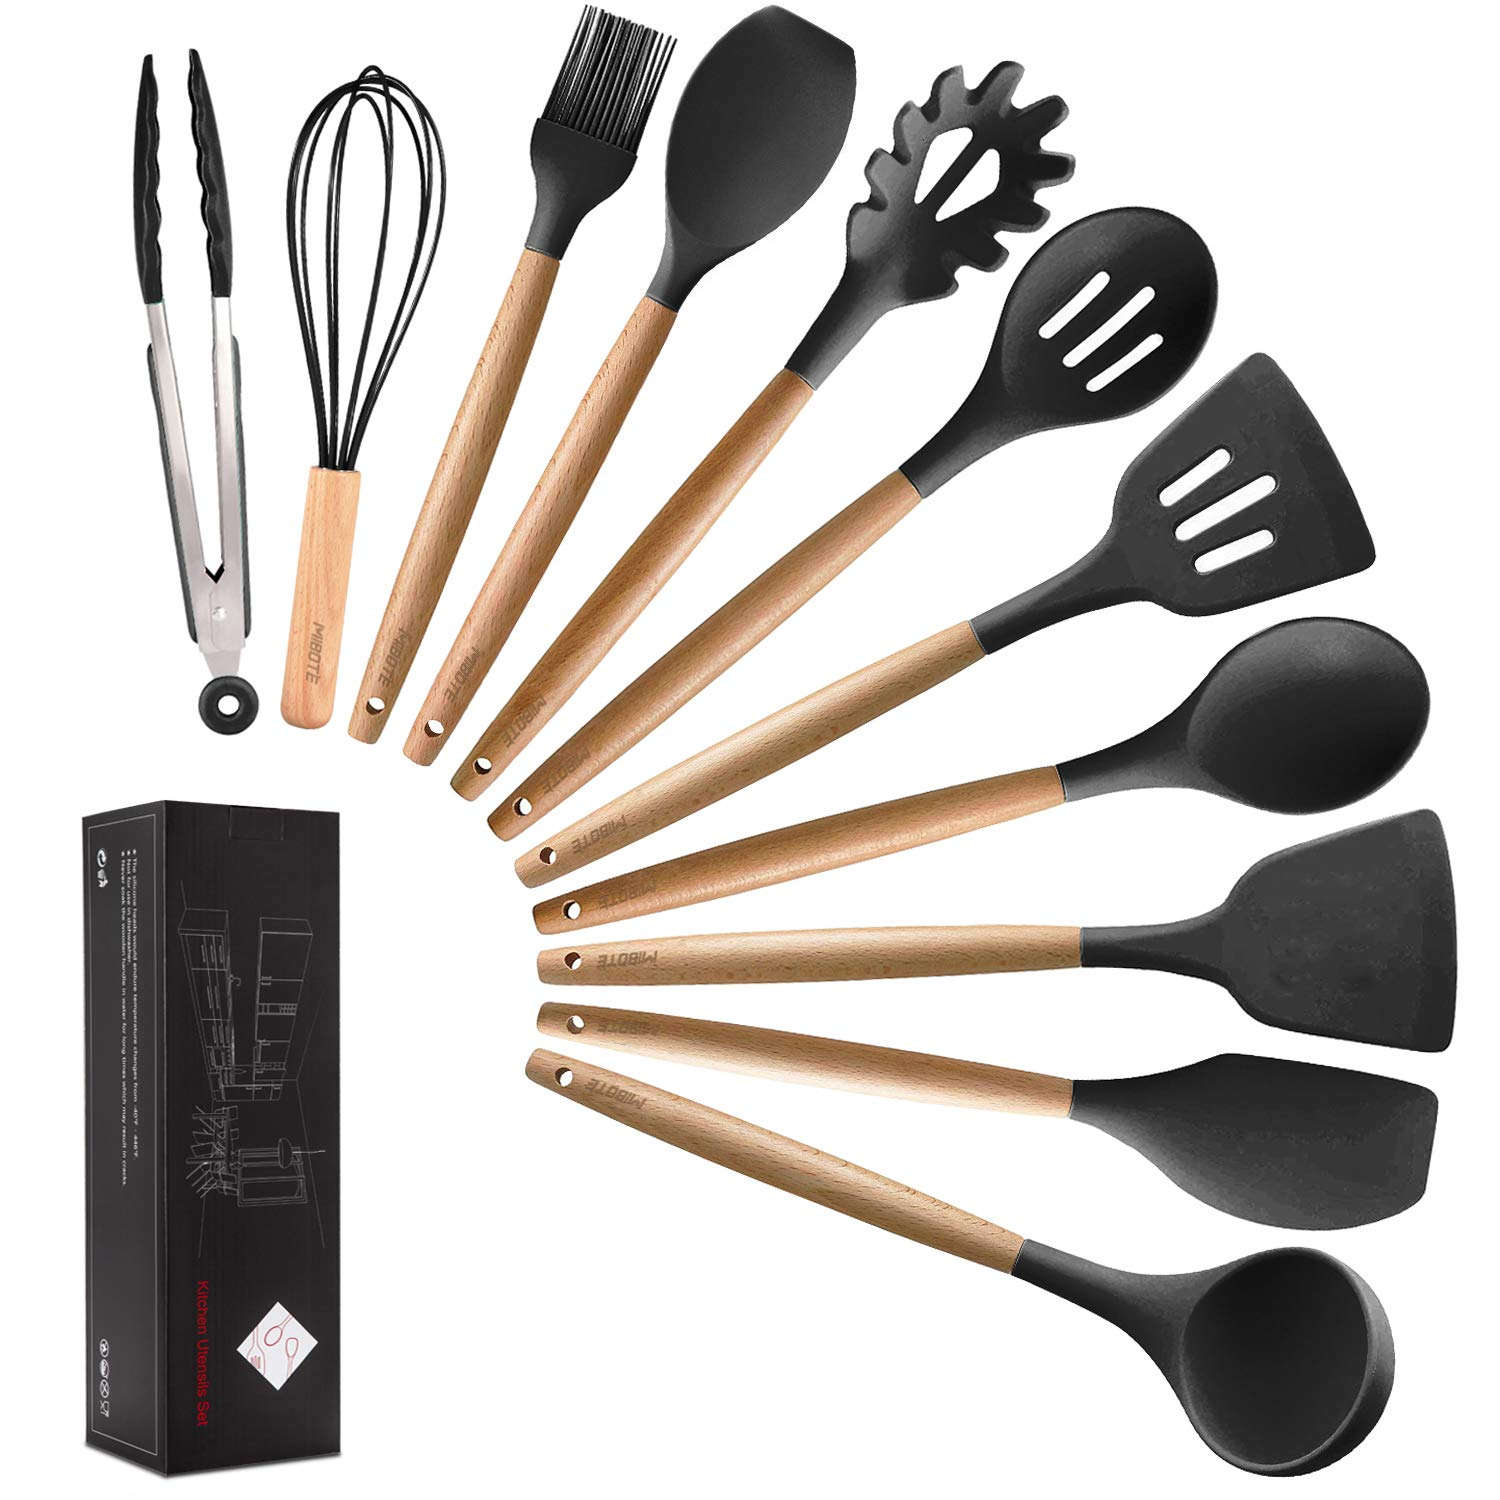 MIBOTE 11pcs Silicone Cooking Kitchen Utensils Set, Bamboo Wooden Handles Cooking Tool BPA Free Non Toxic Silicone Turner Tongs Spatula Spoon Kitchen Gadgets Utensil Set for Nonstick Cookware (Grey) by MIBOTE